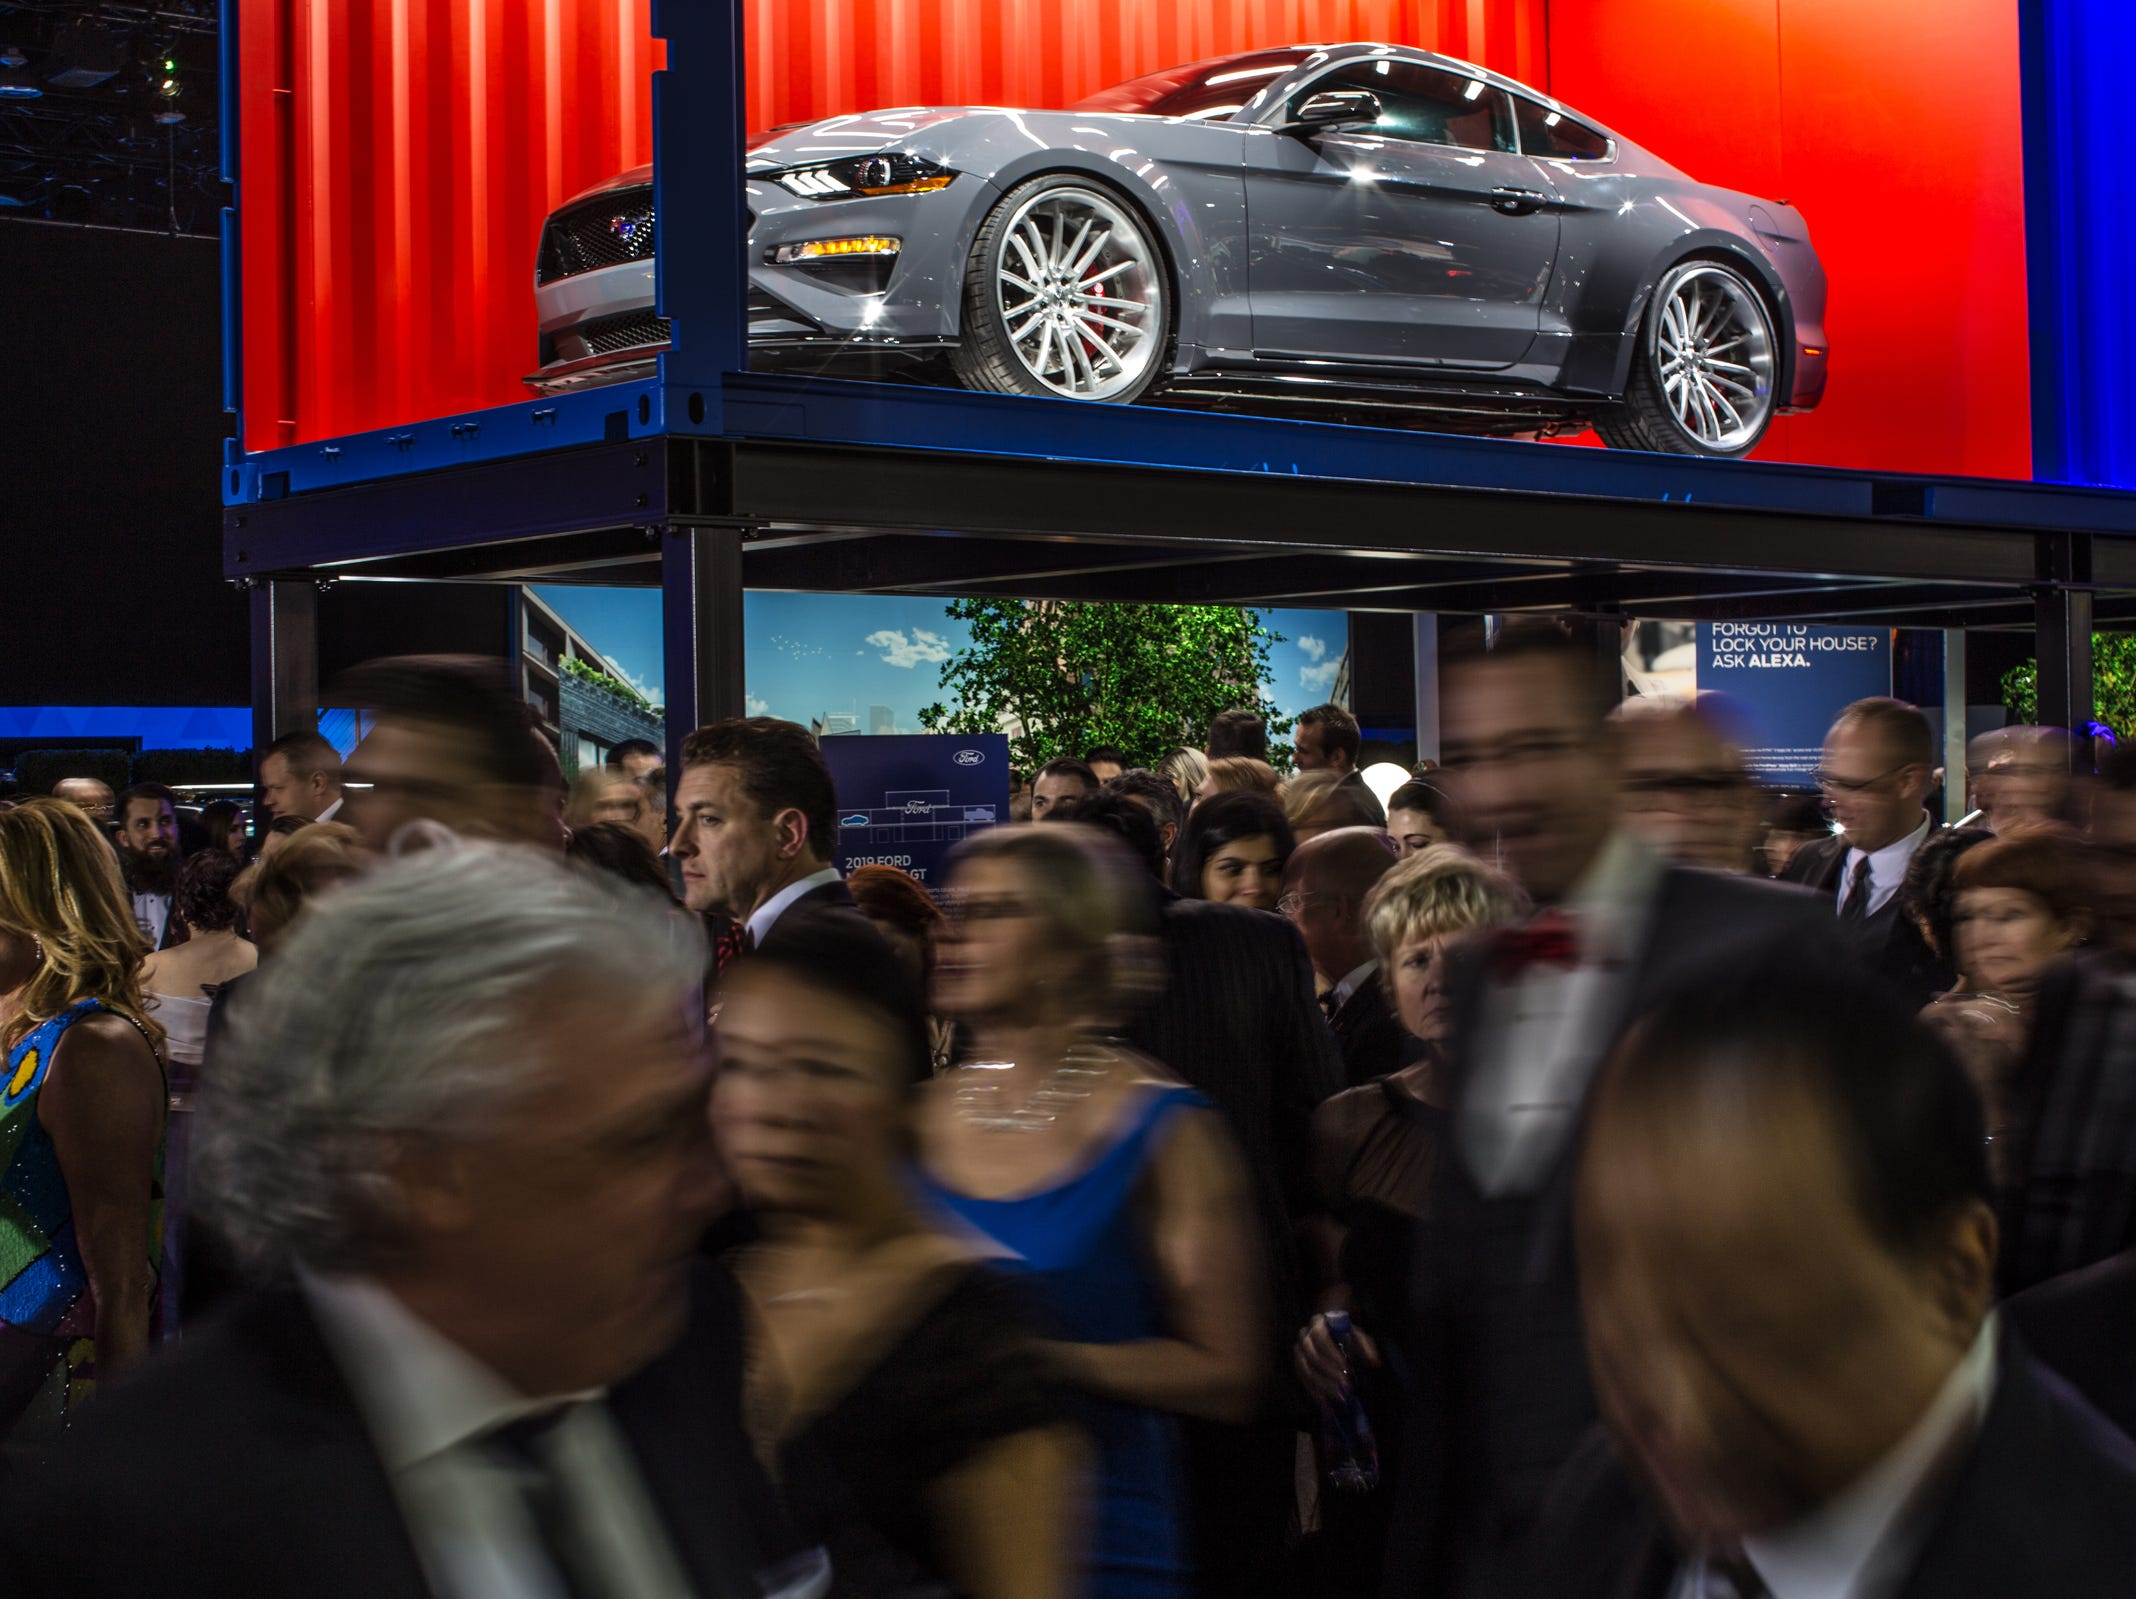 People stroll past the Ford exhibit during the 2019 North American International Auto Show Charity Preview at Cobo Center in Detroit on Friday, January 18, 2019.